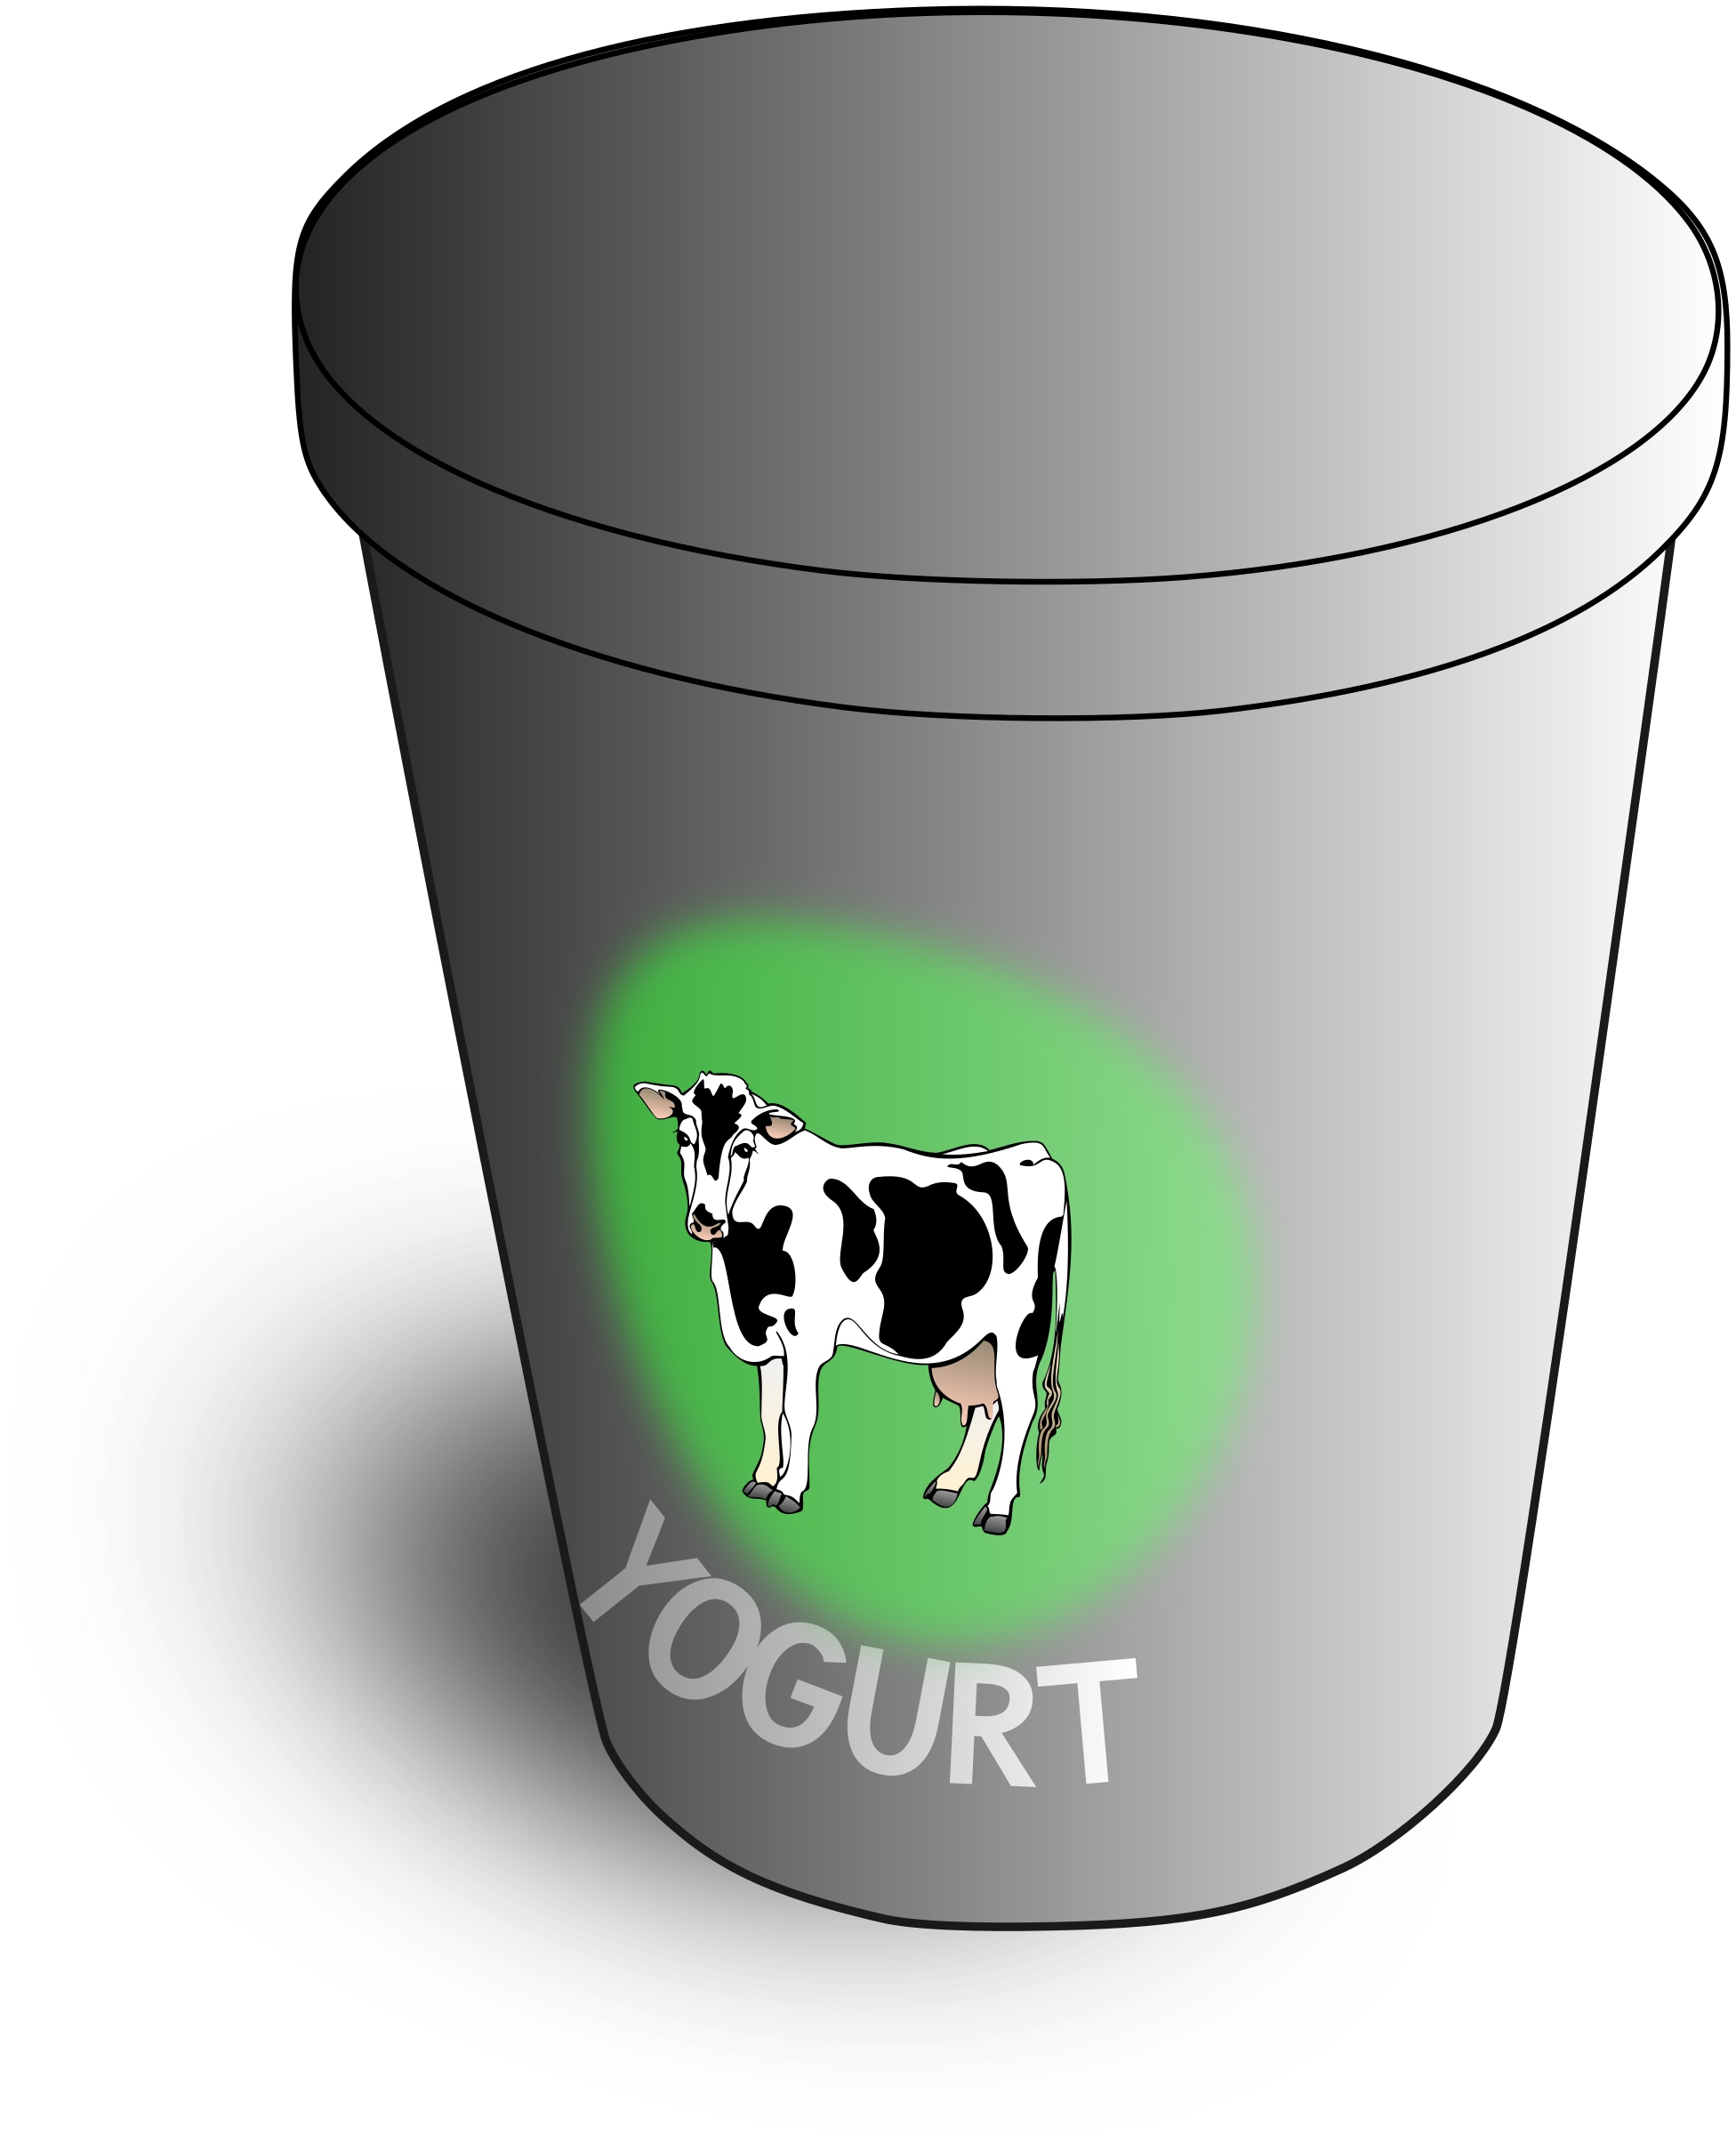 Yogurt illustrations and clipart 13868  Can Stock Photo